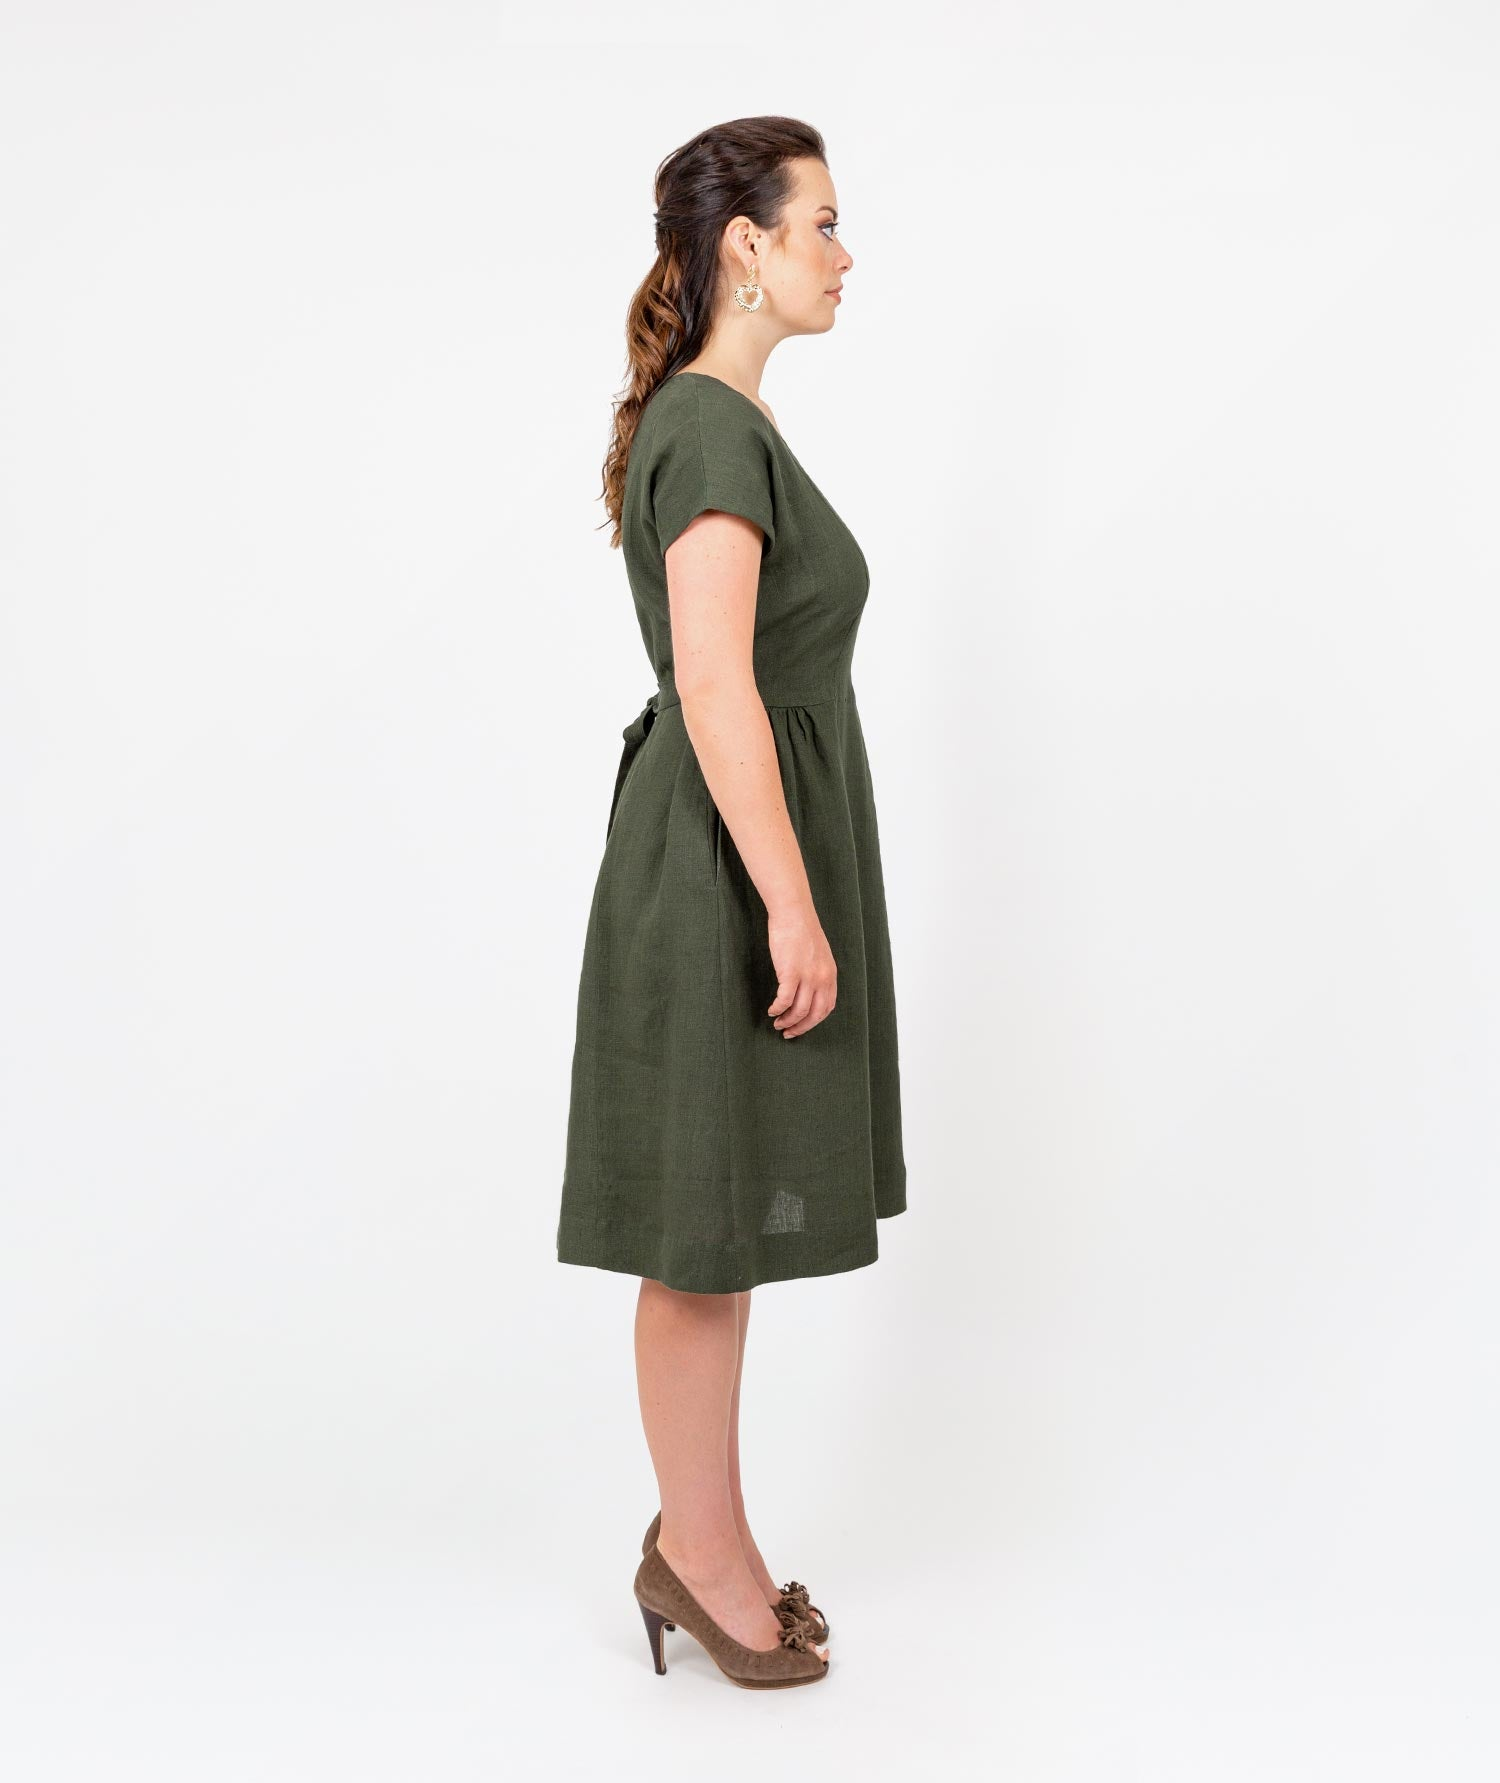 Resolute Dress by Holi Boli